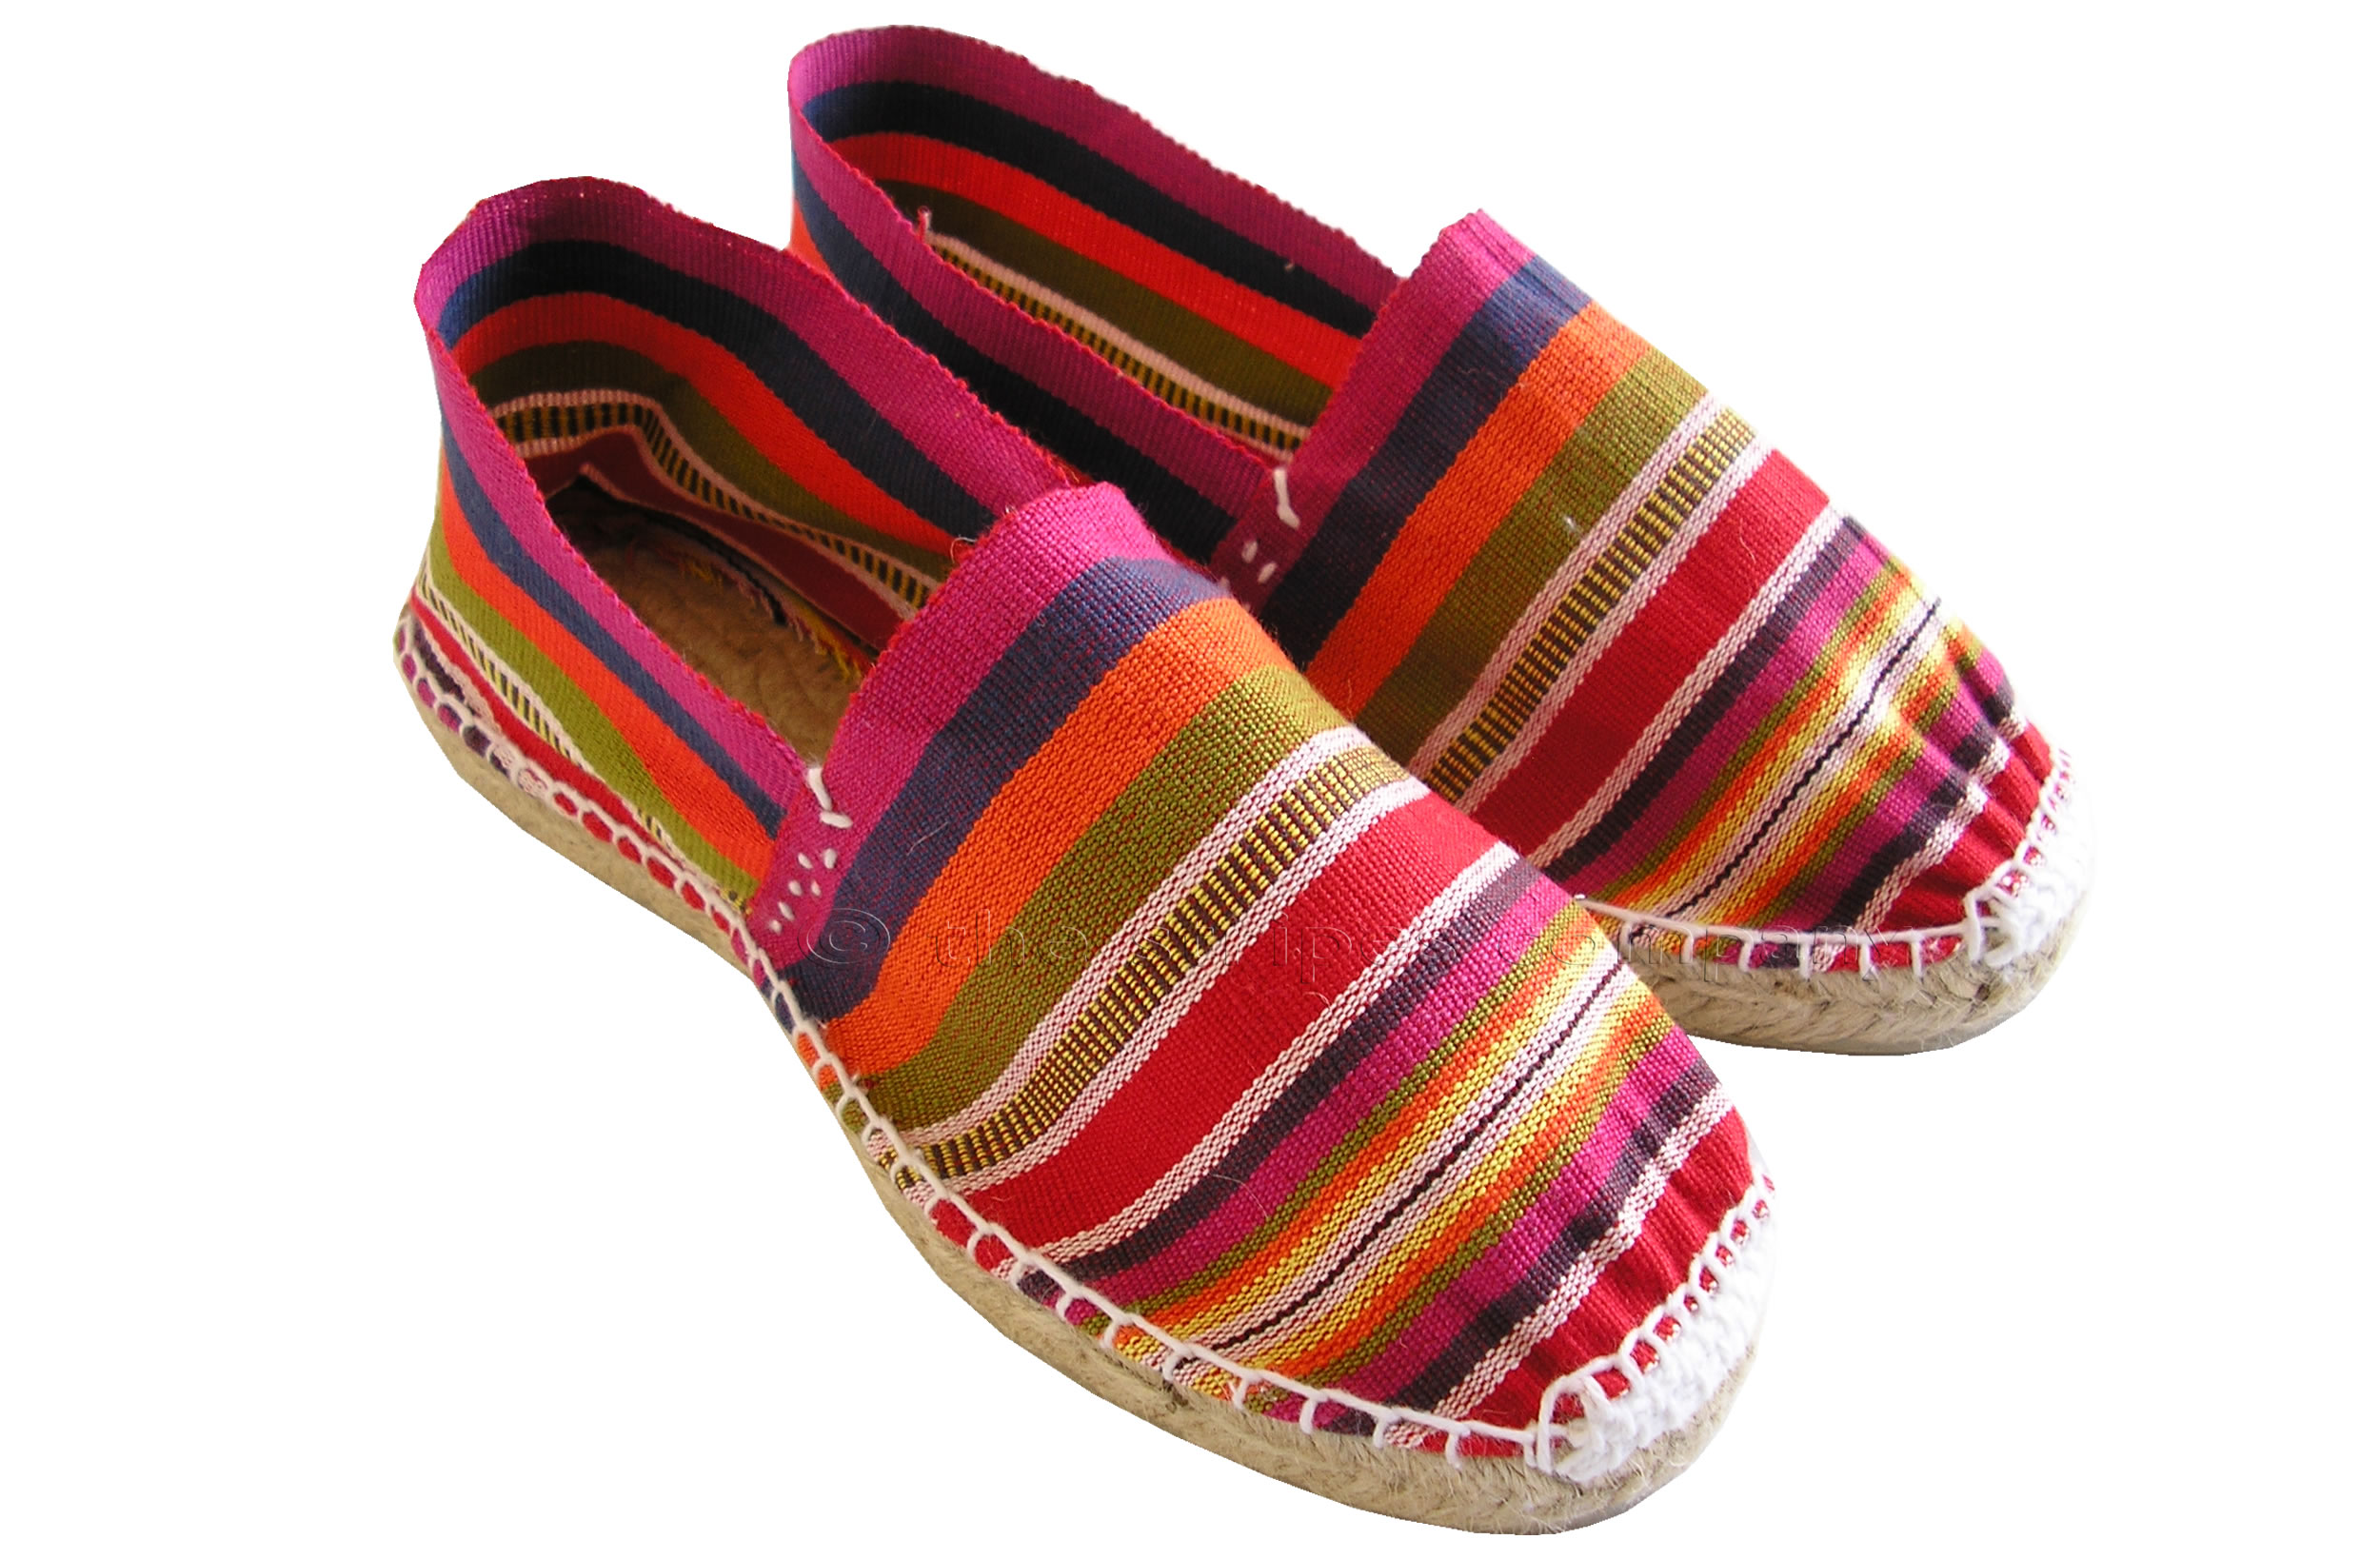 Pink Striped Espadrilles | Pink Navy Multi Stripe Espadrille Shoes Size 37